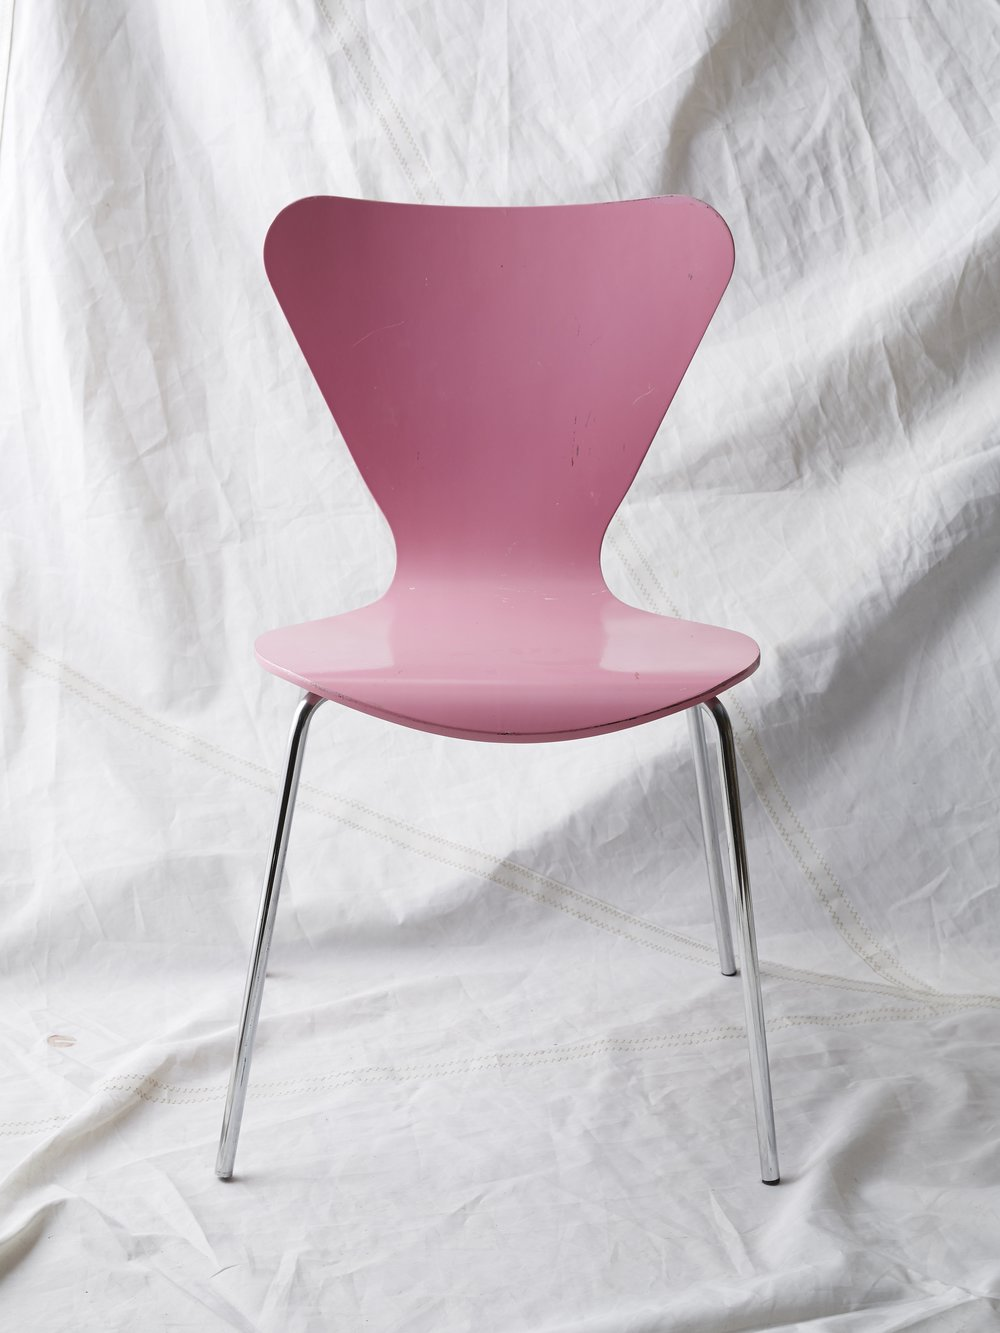 "CH019  Arne Jacobson pink chair 32"" H x 18"" W x 19"" D  $75/week"